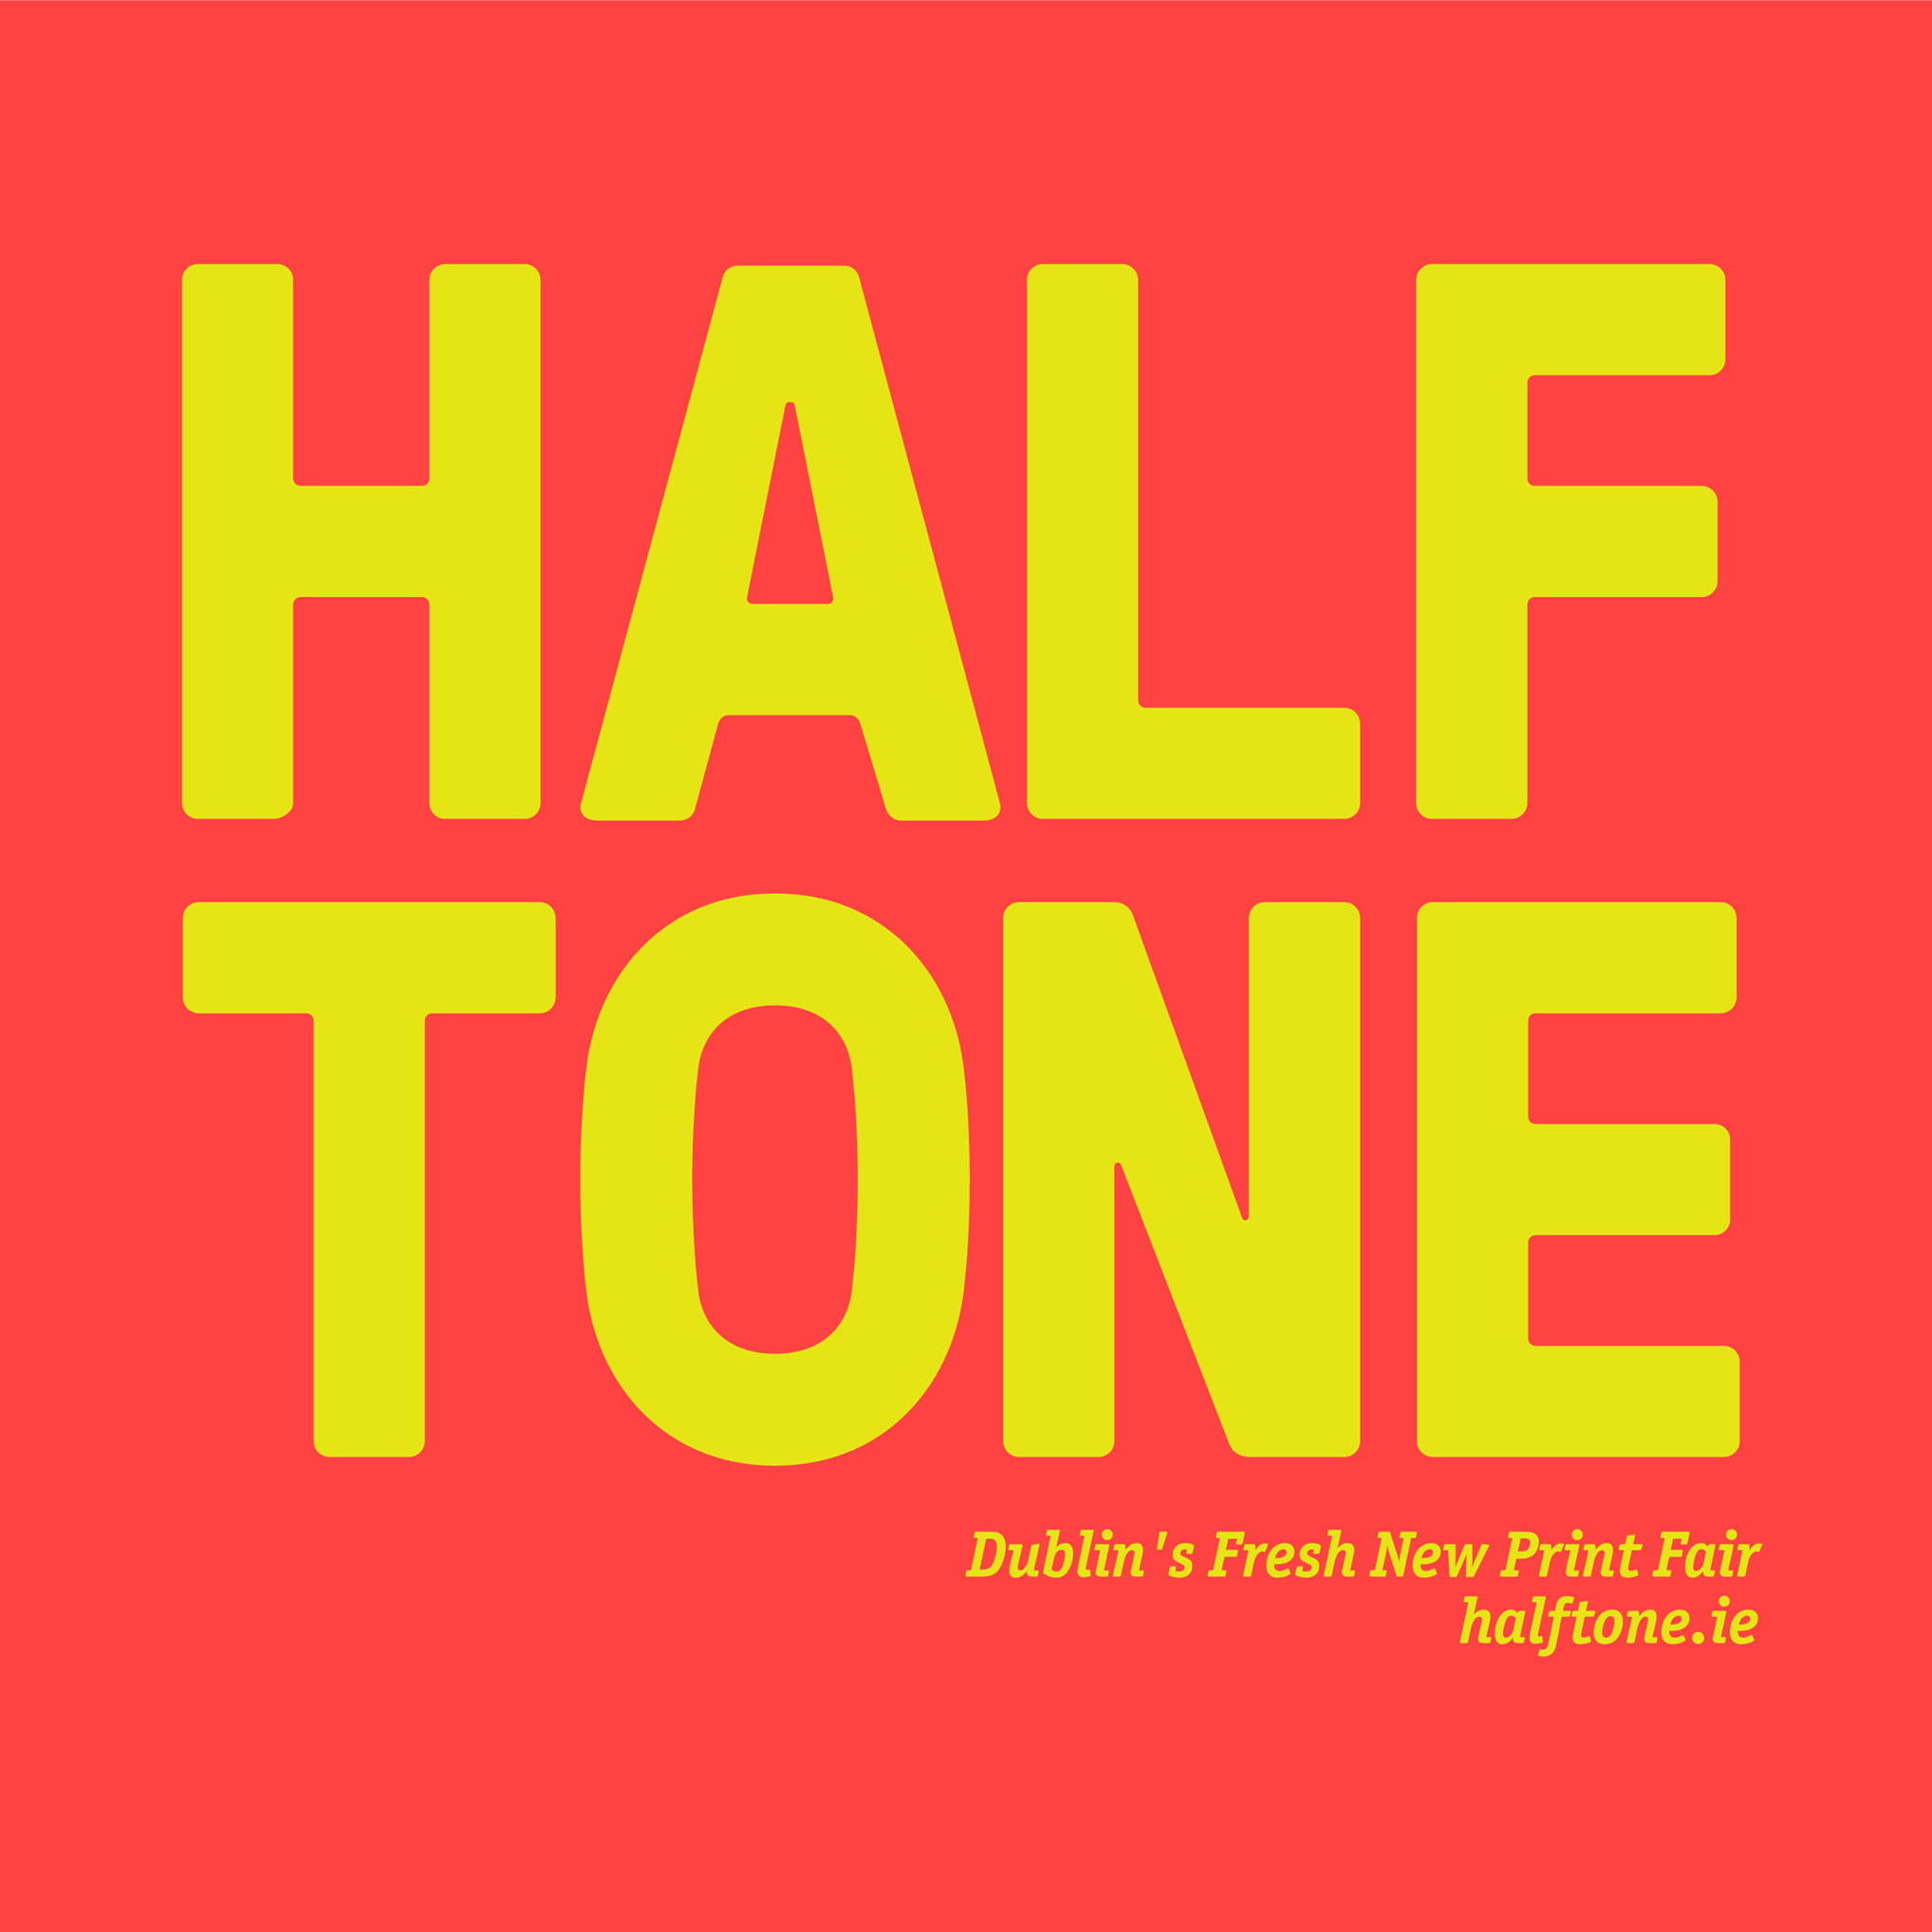 HALFTONE Dublin's Fresh New Print Fair